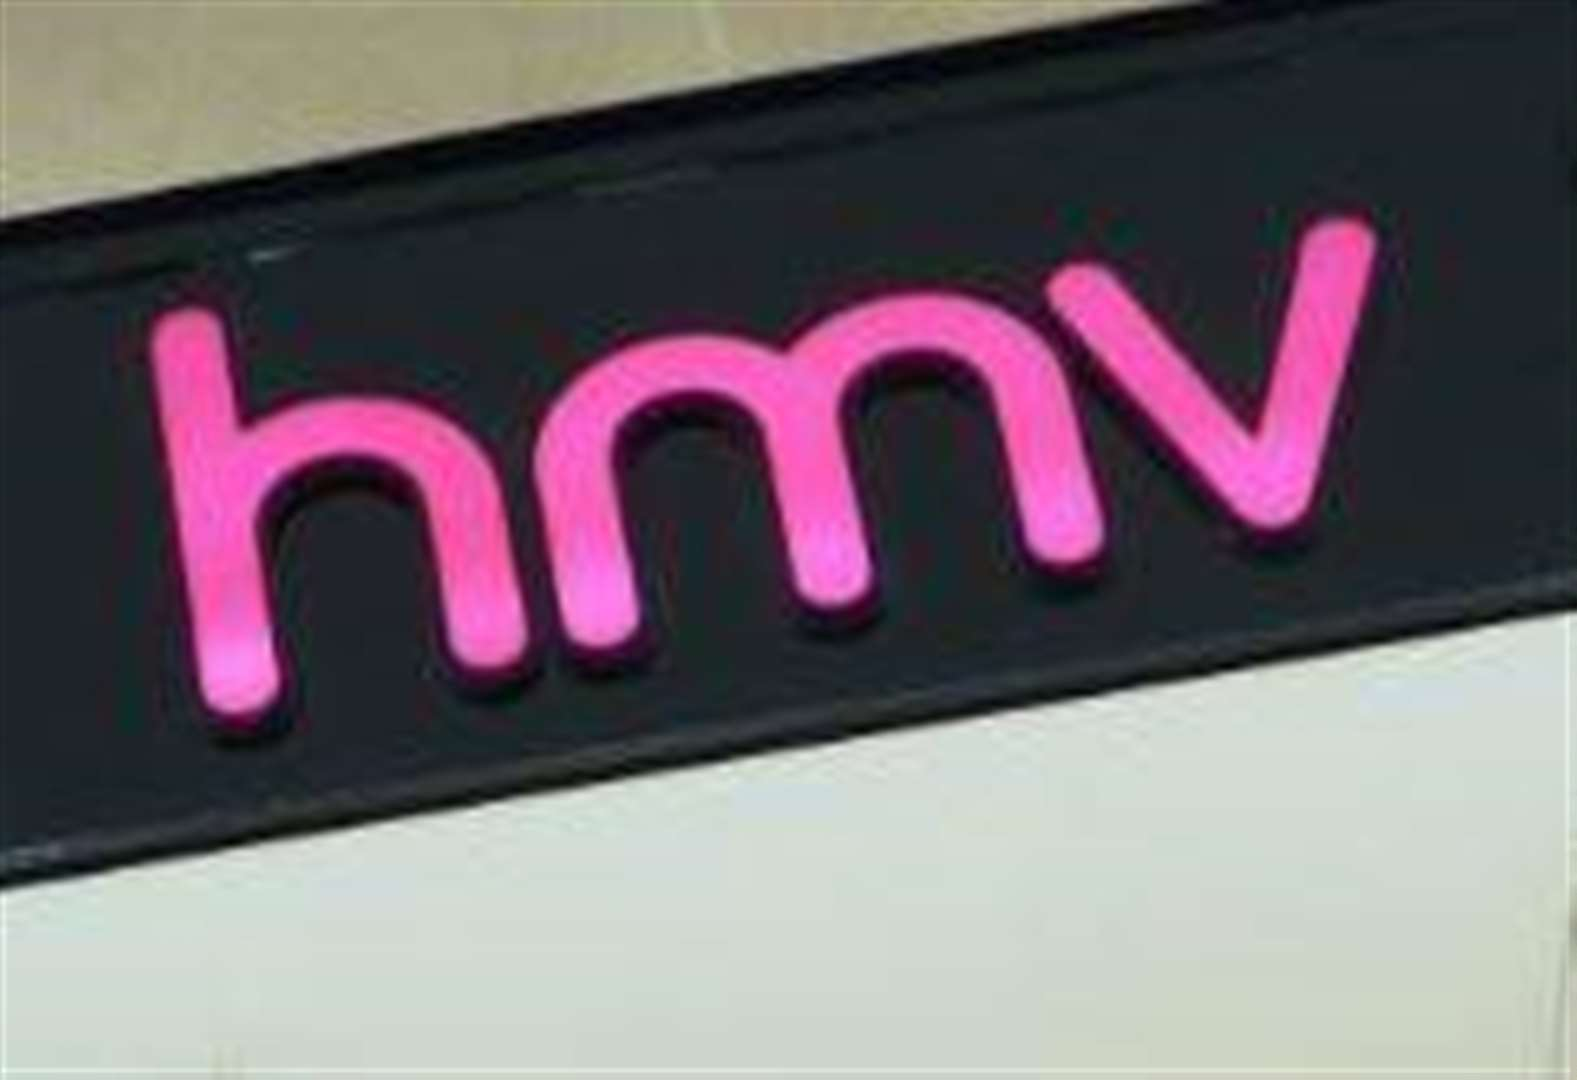 HMV store brought back from the brink